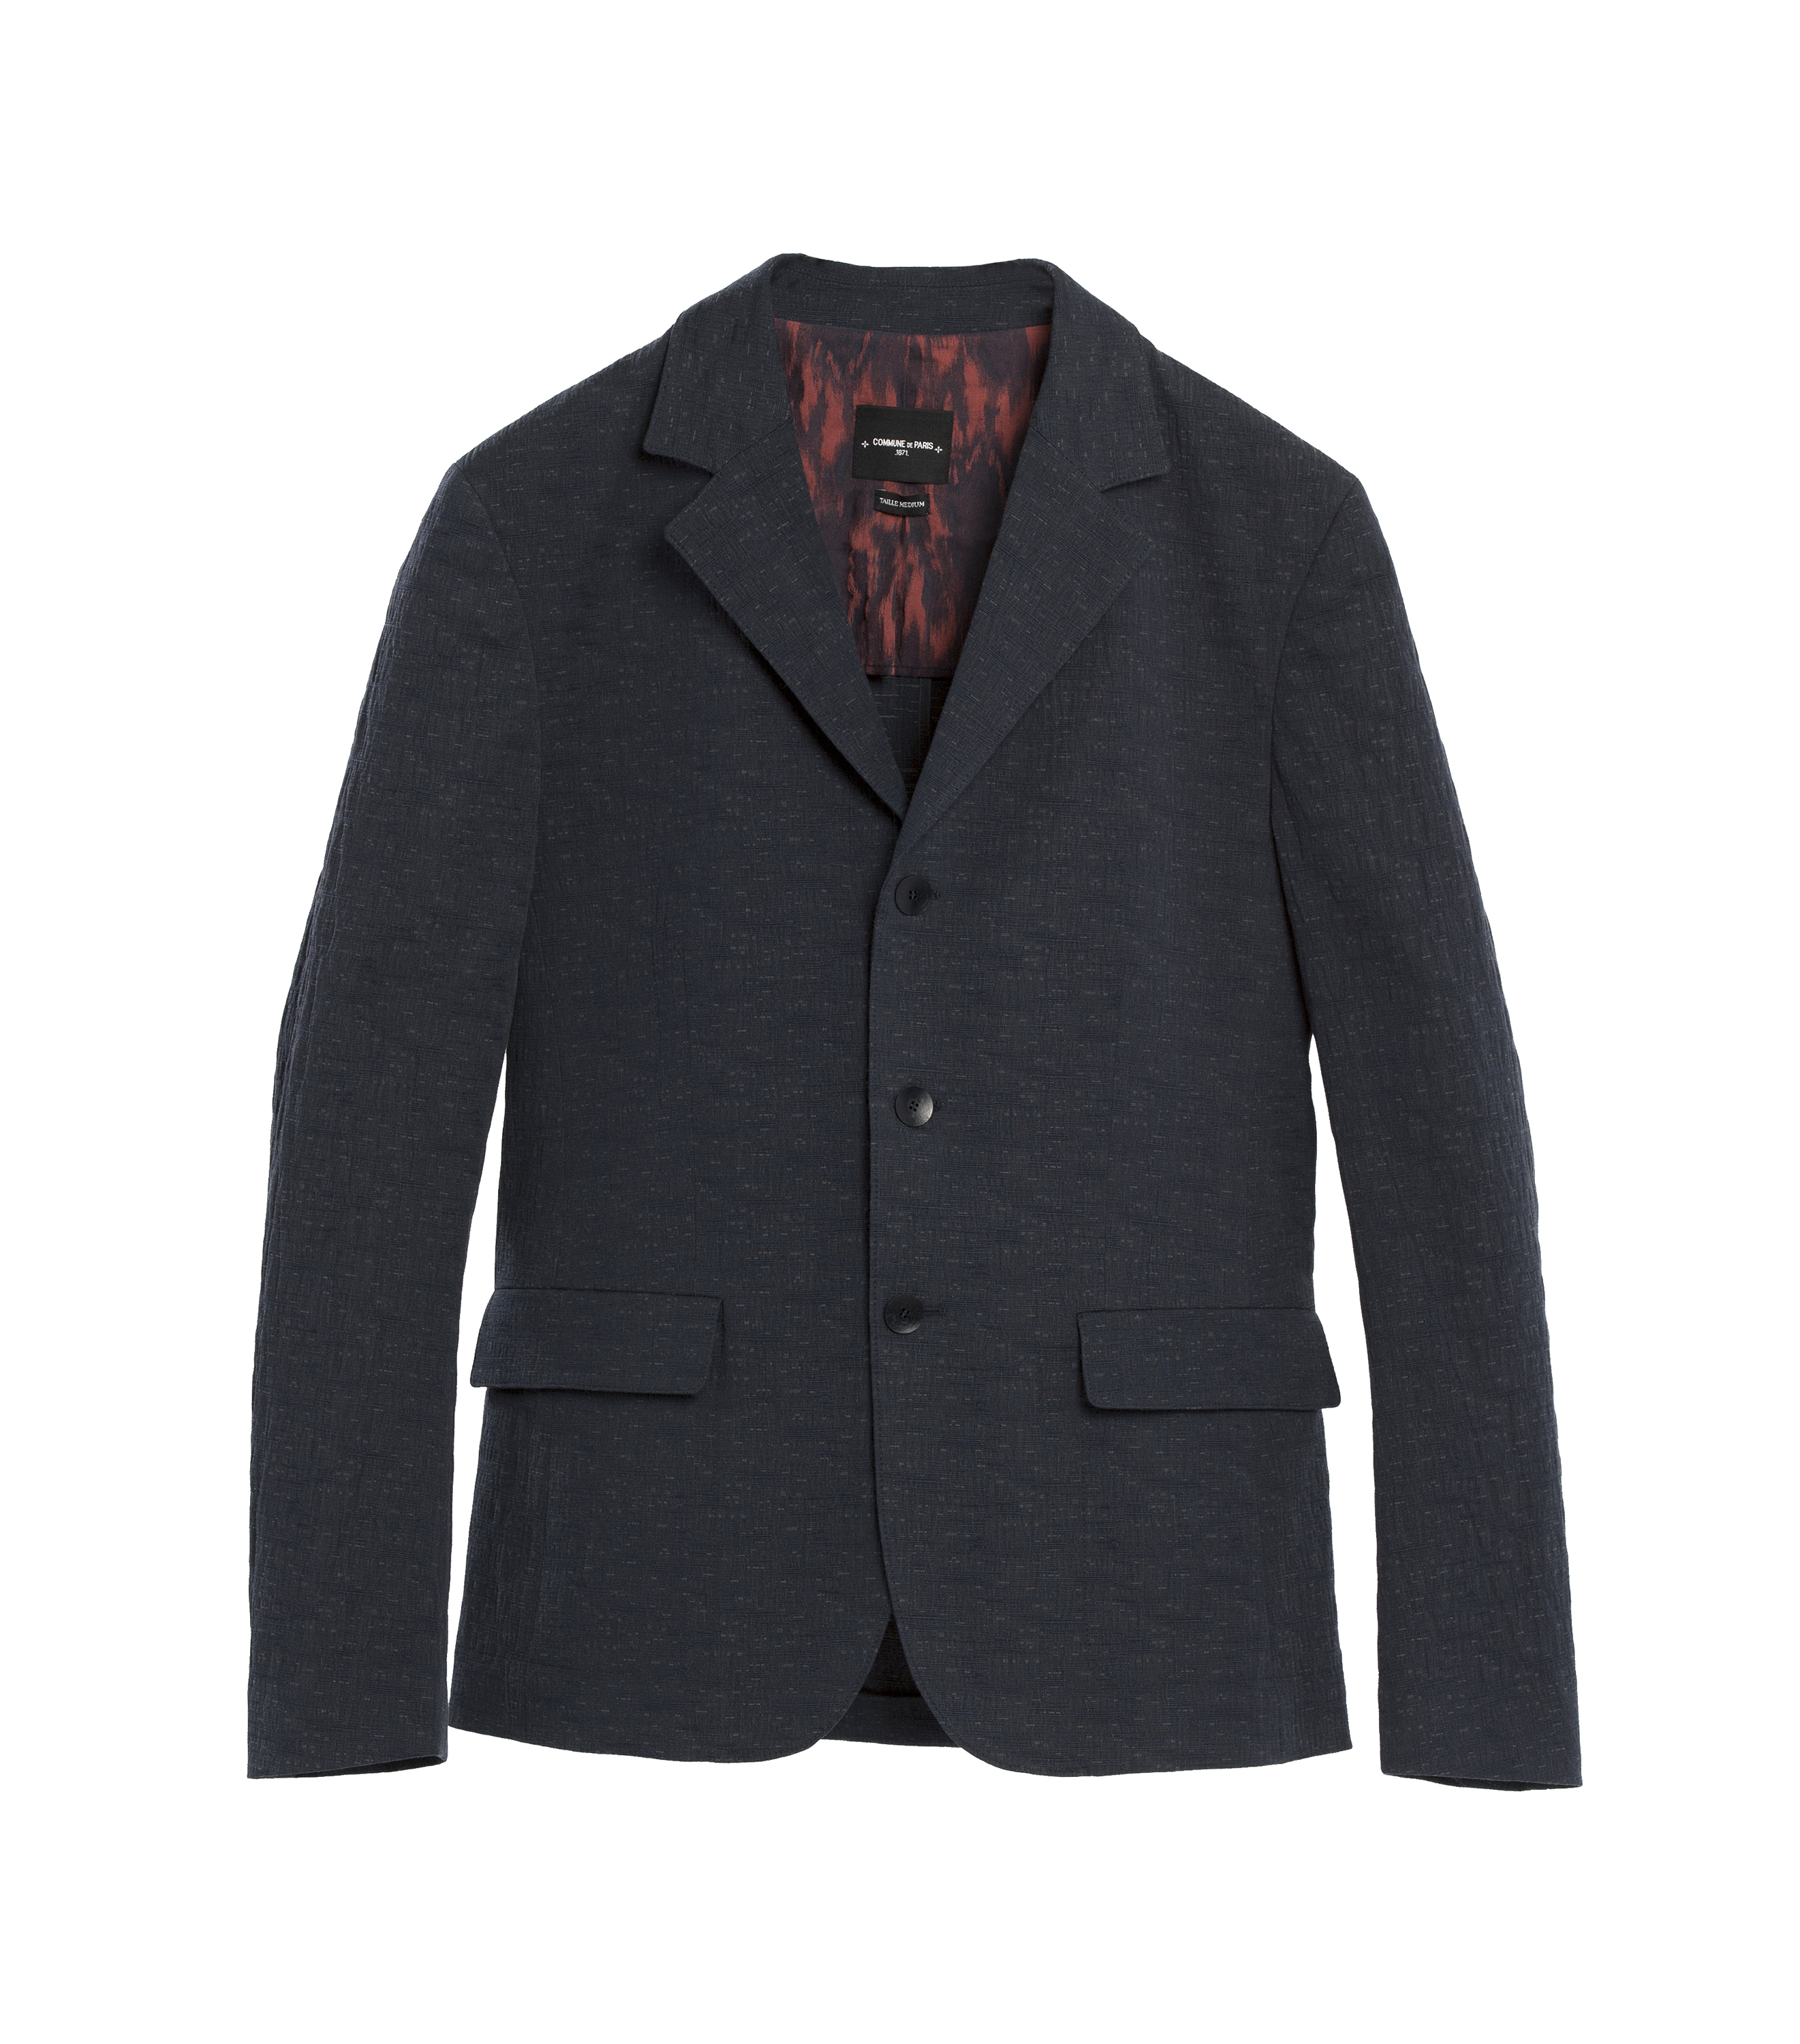 SUIT JACKET  PROTOT - AKATRE - Navy